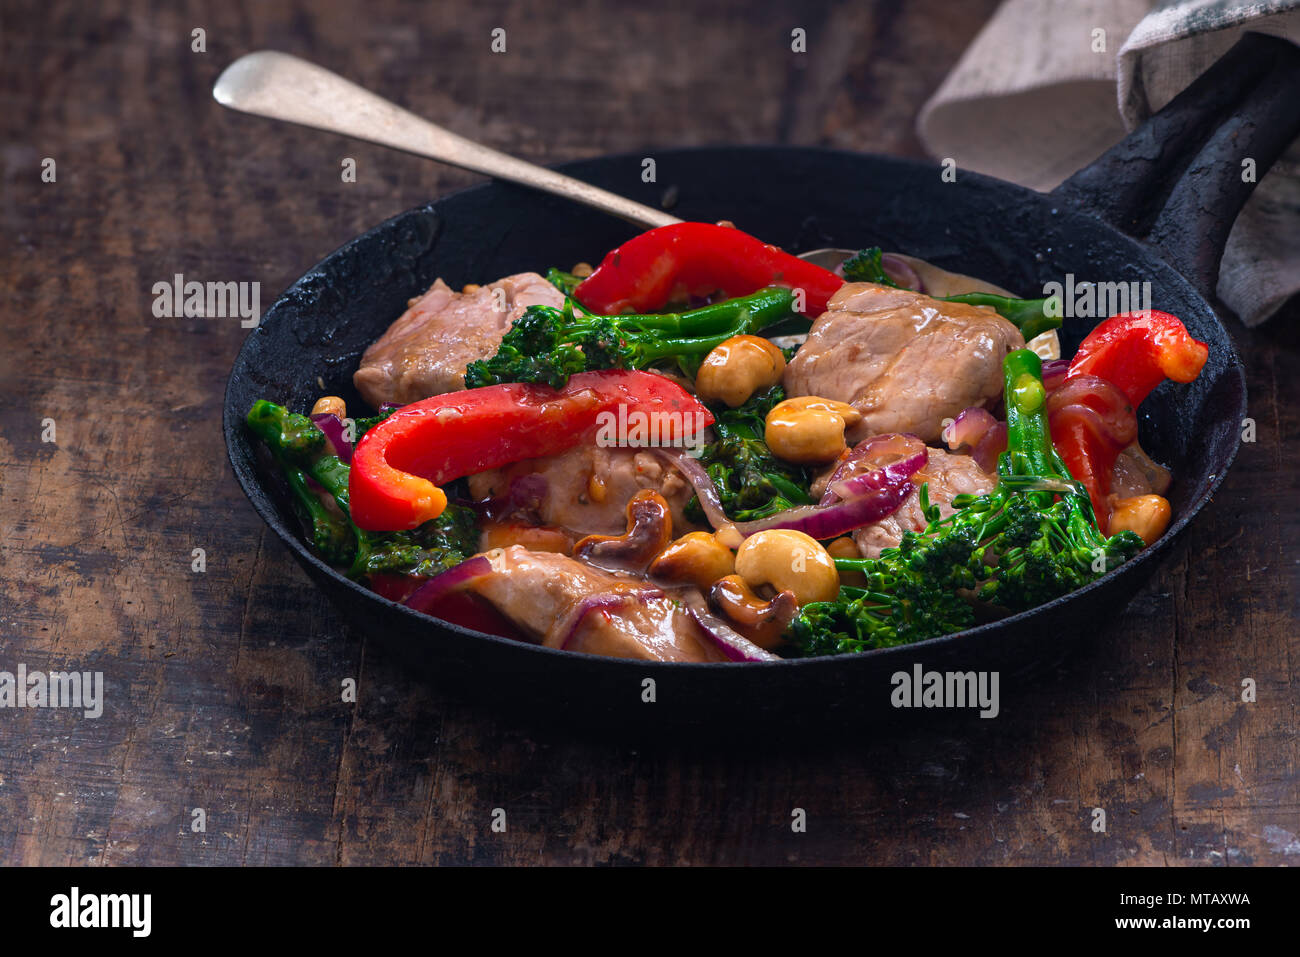 Sichuan pork, broccoli, red pepper and cashew stir-fry in a frying pan Stock Photo